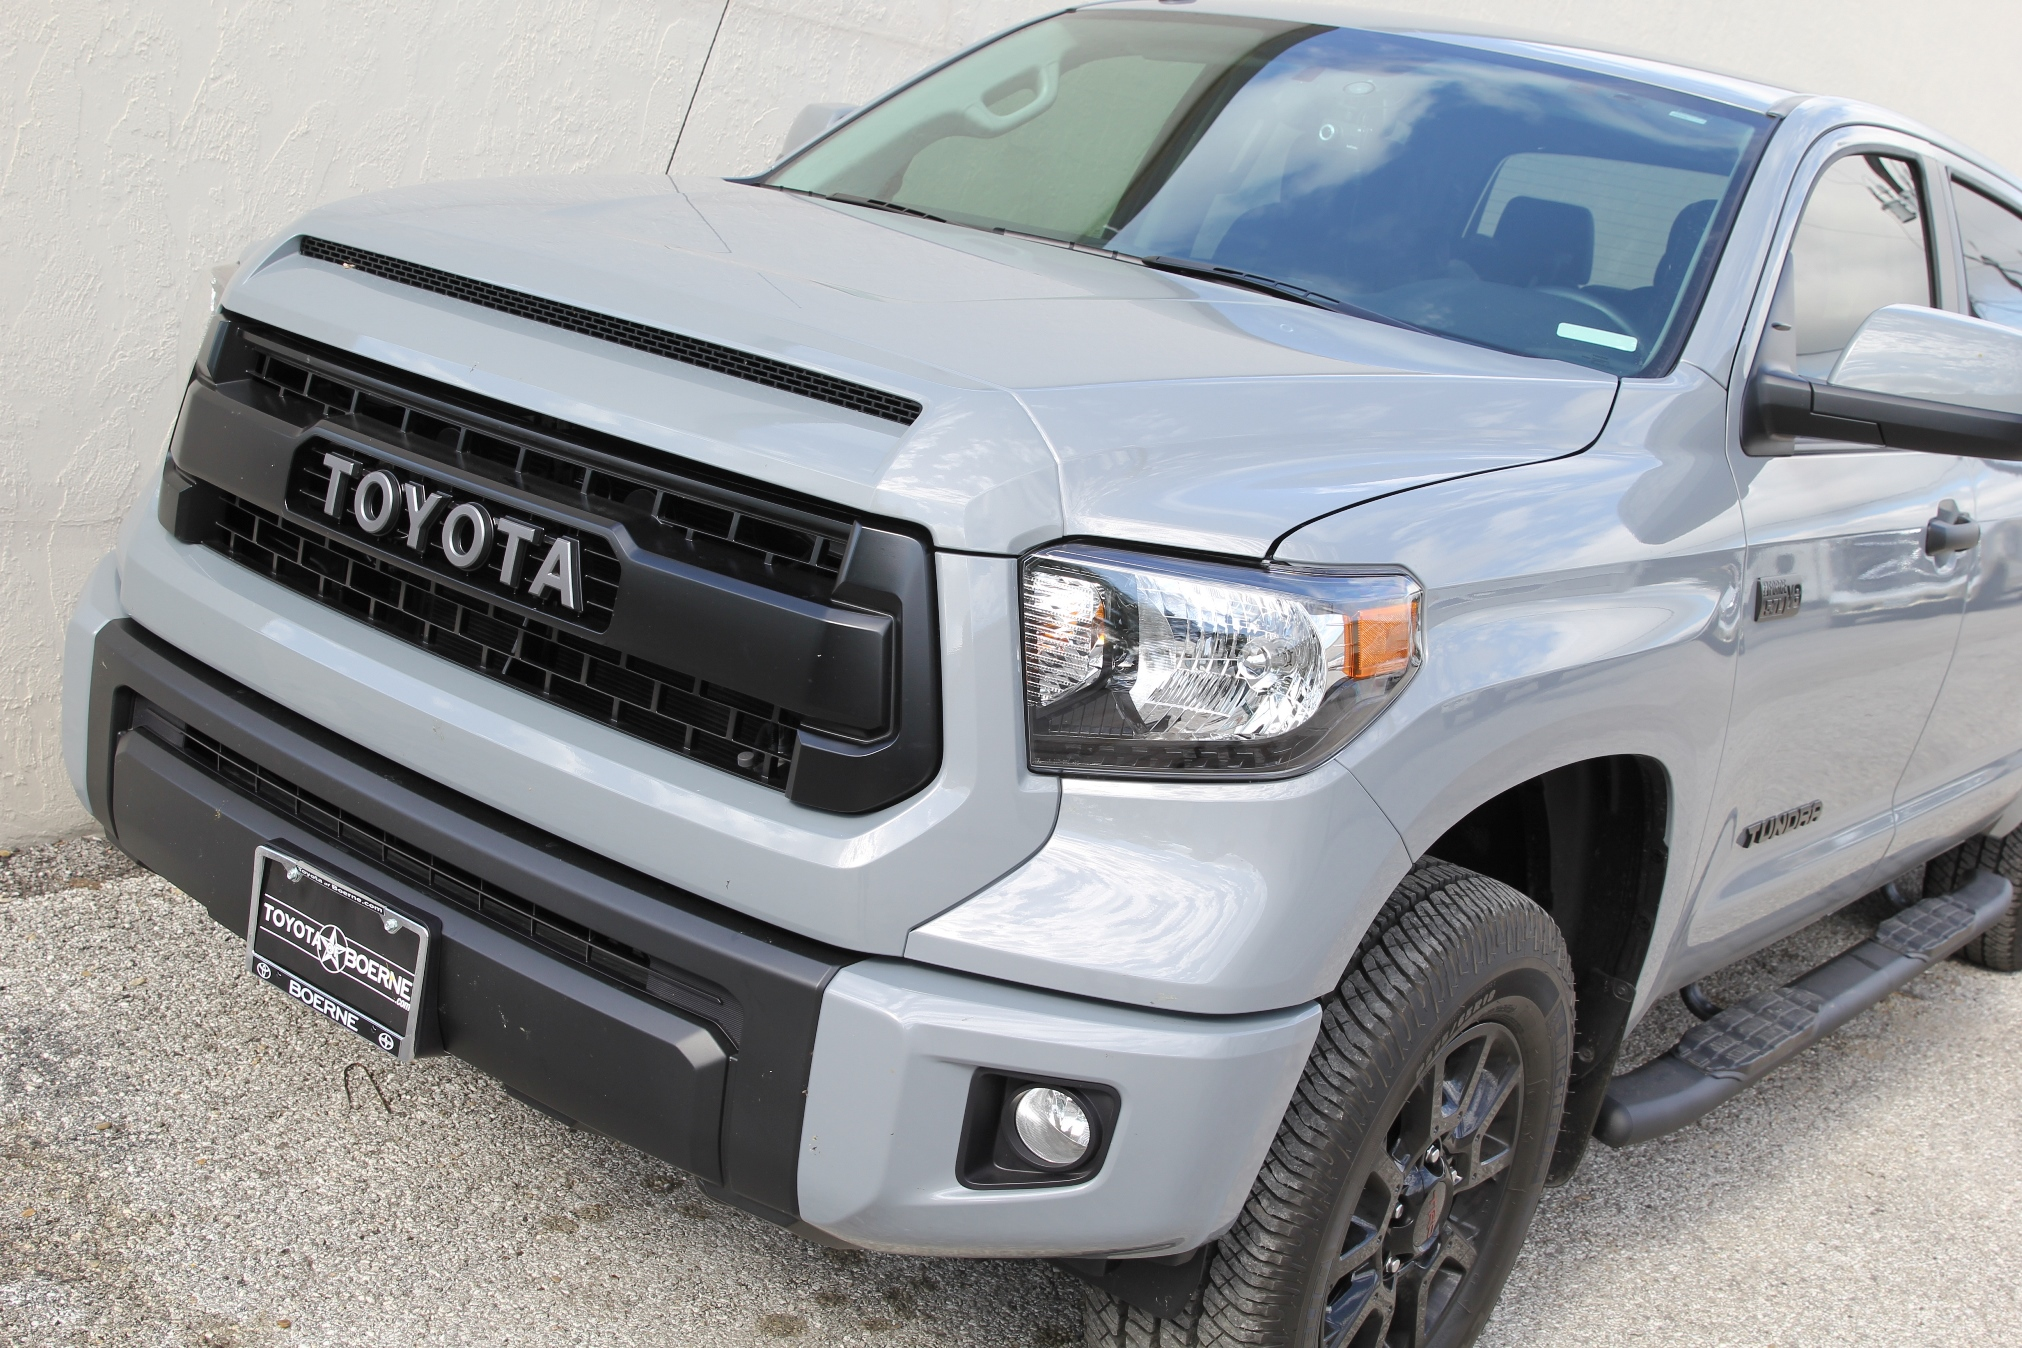 toyota tundra crewmax trd pro outdoor pictures 2017 3 taco tunes toyota audio solutions. Black Bedroom Furniture Sets. Home Design Ideas